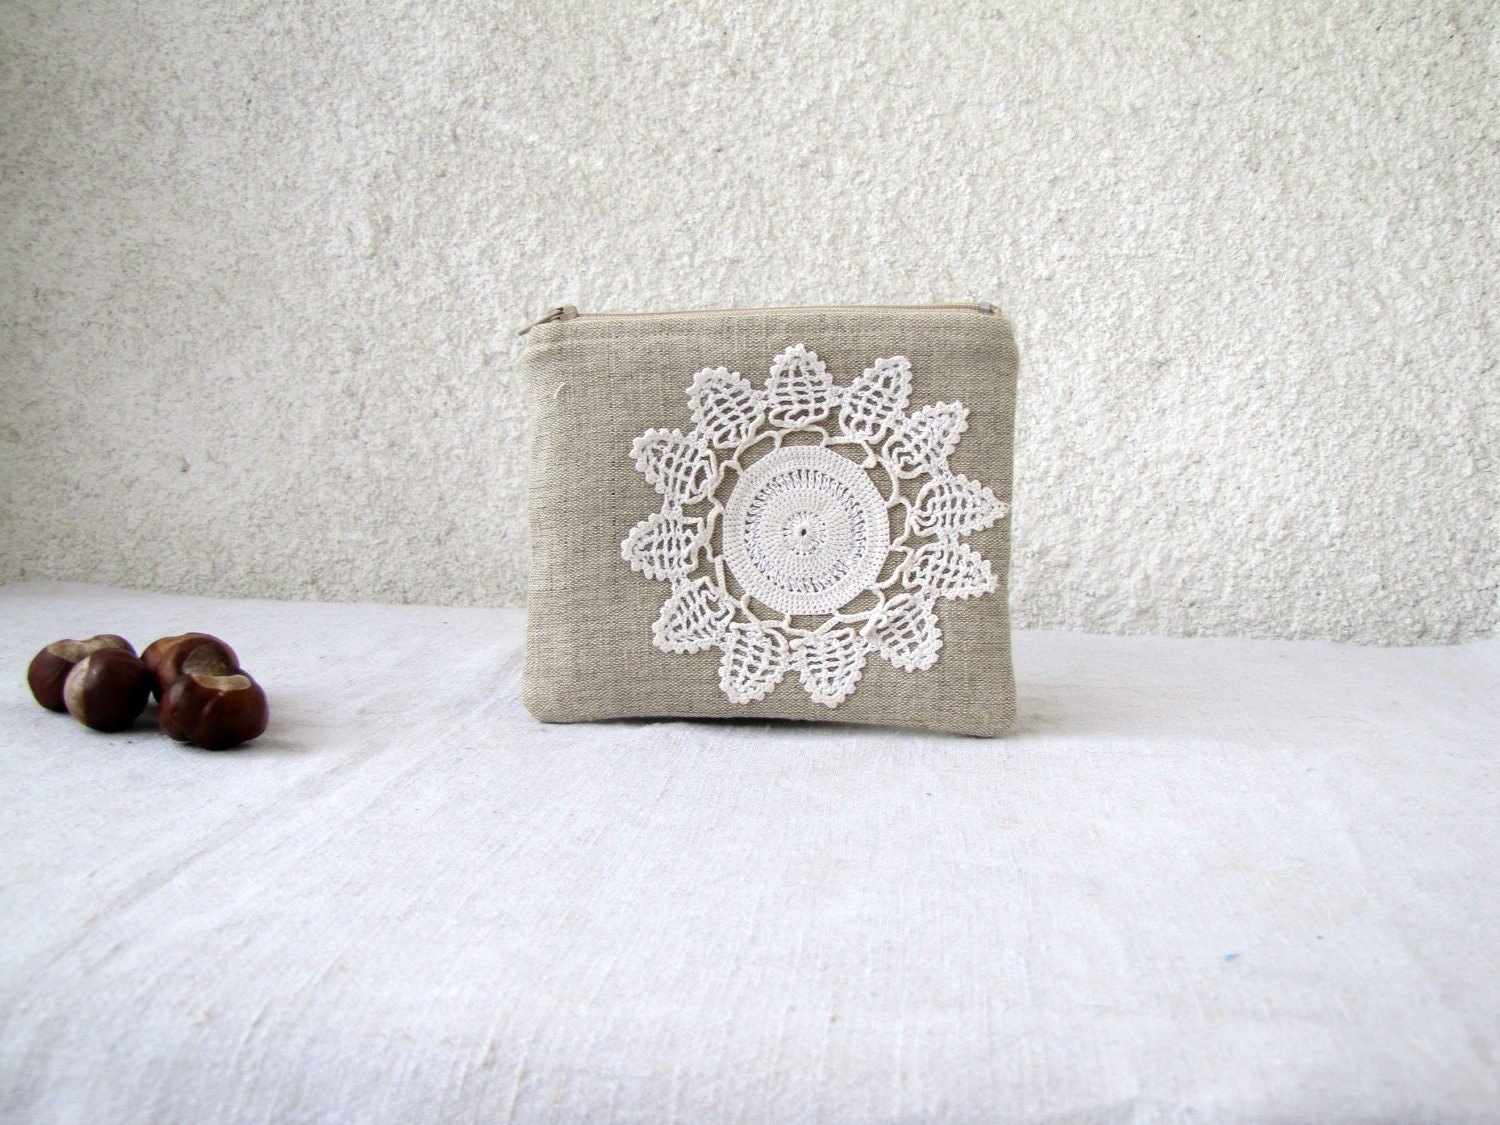 Cute little pouch  - natural linen and vintage doily flower